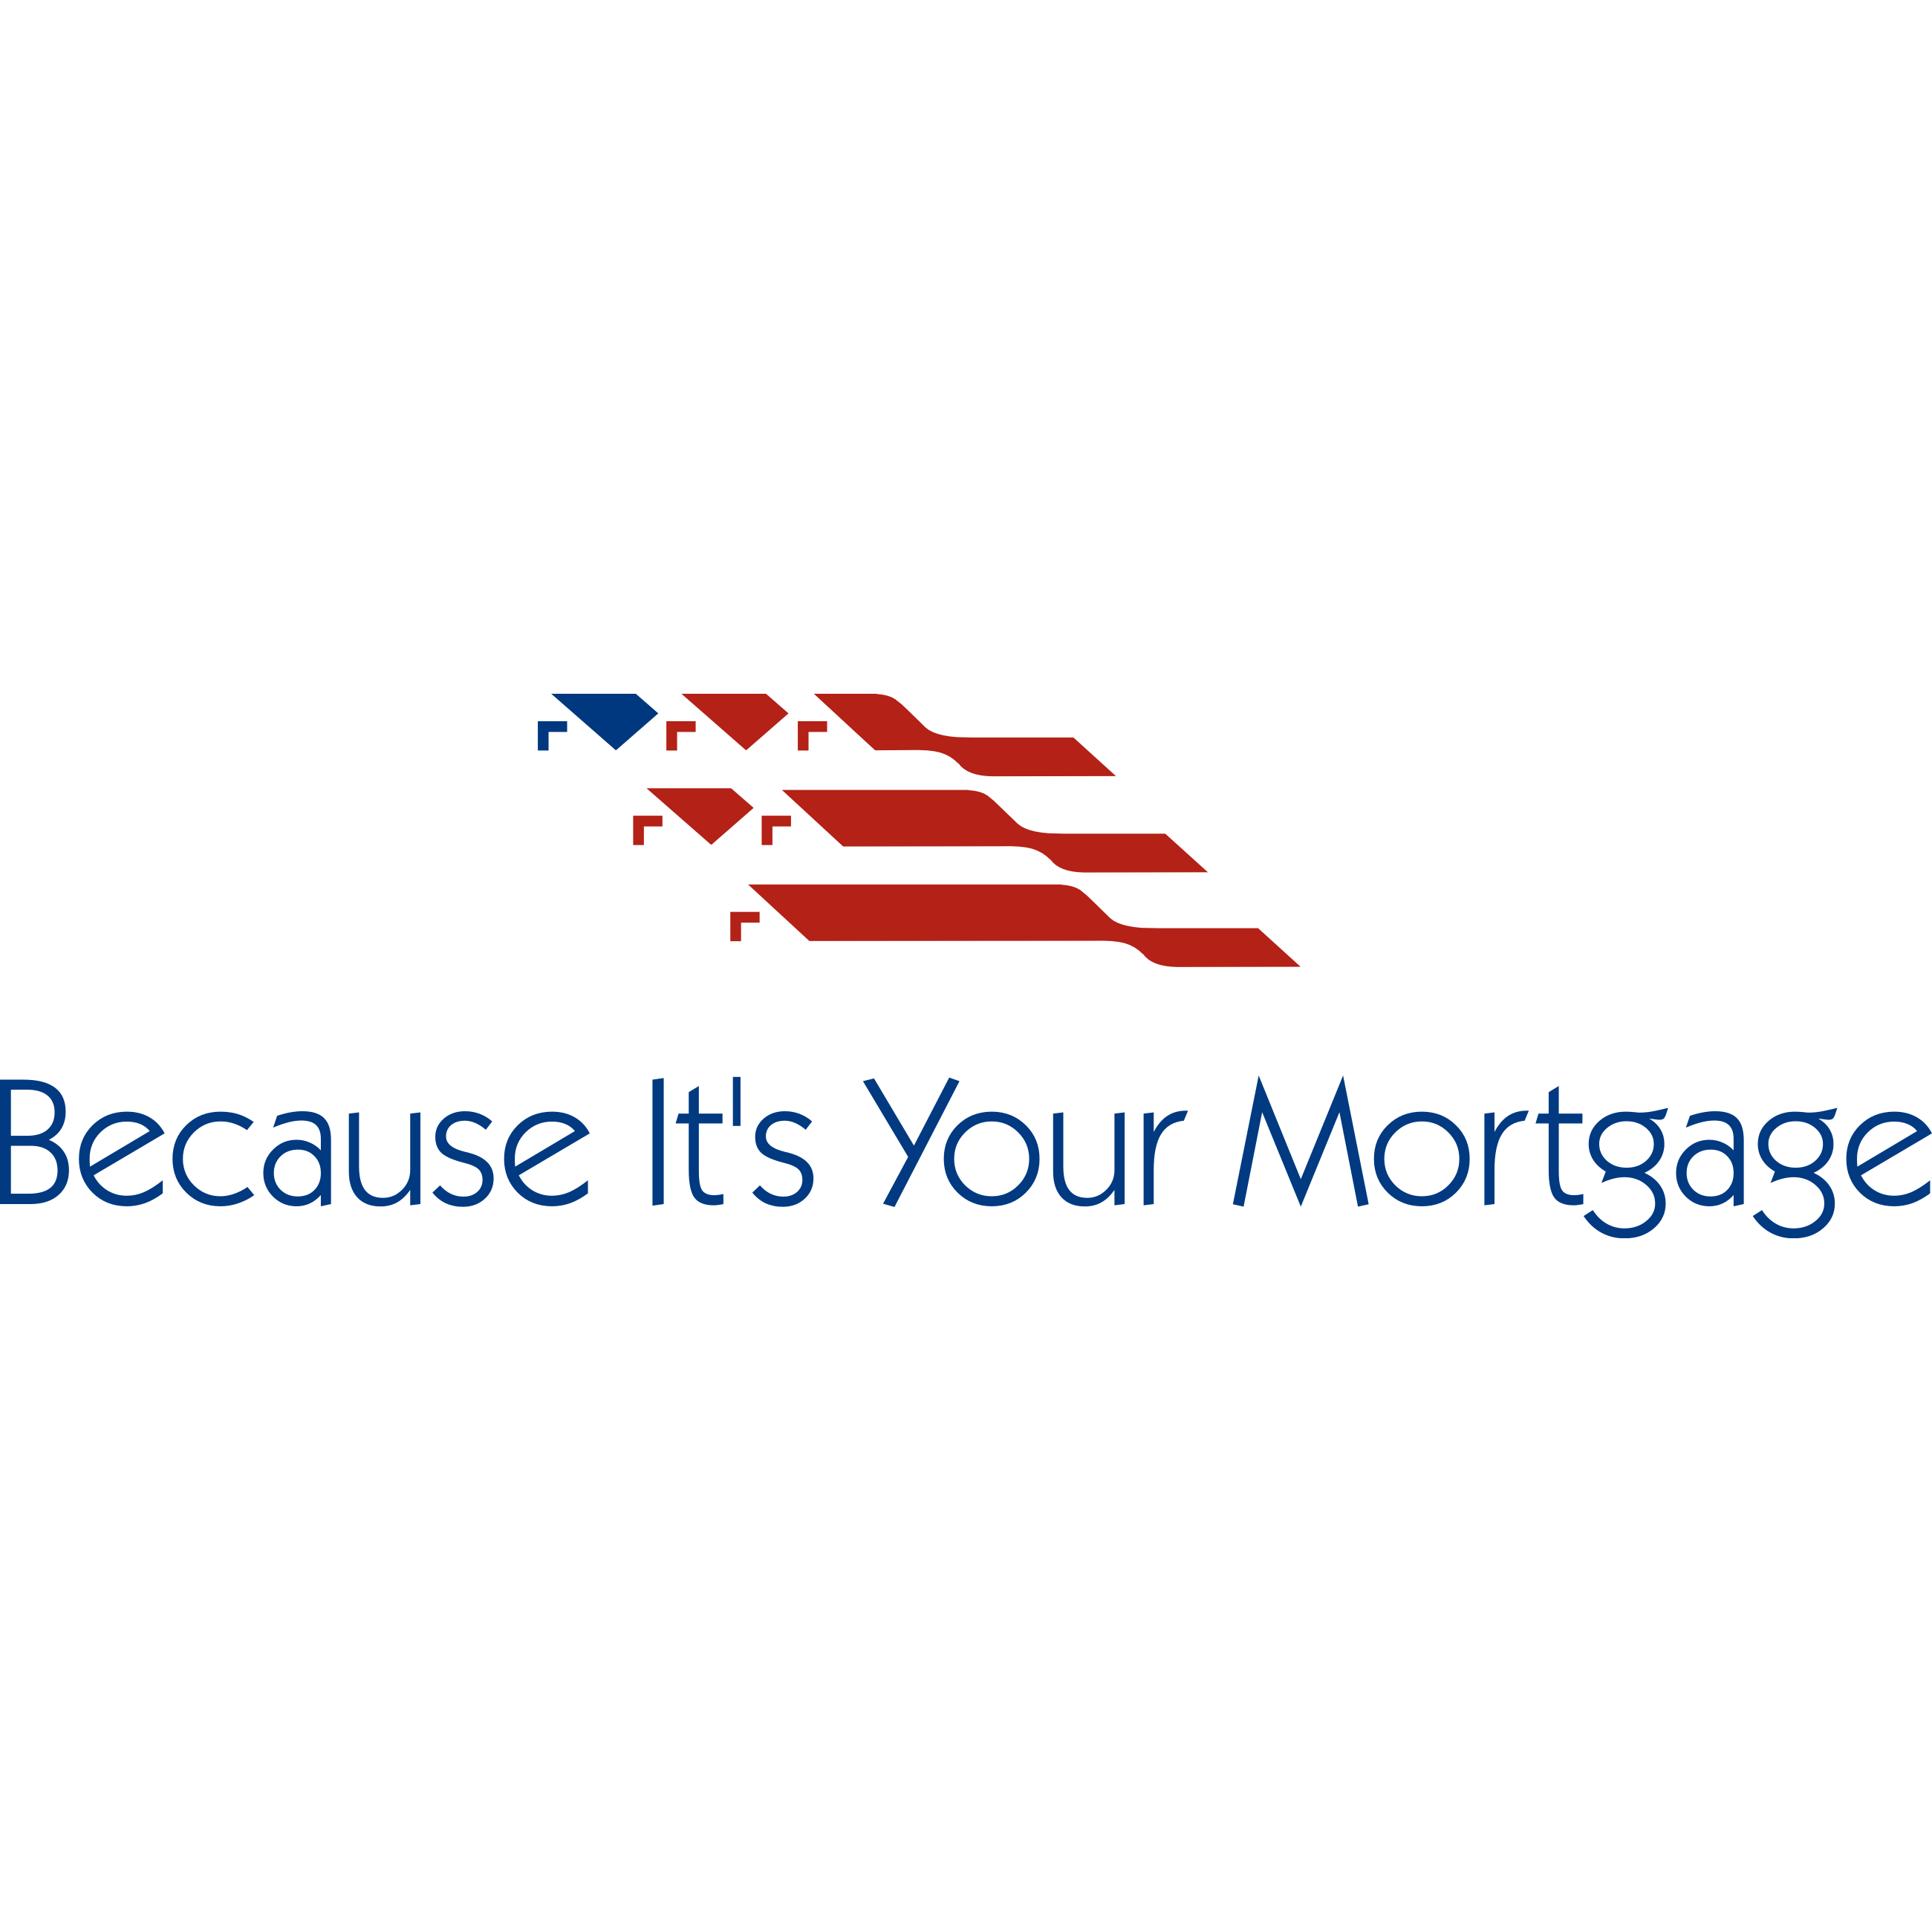 It's Your Mortgage